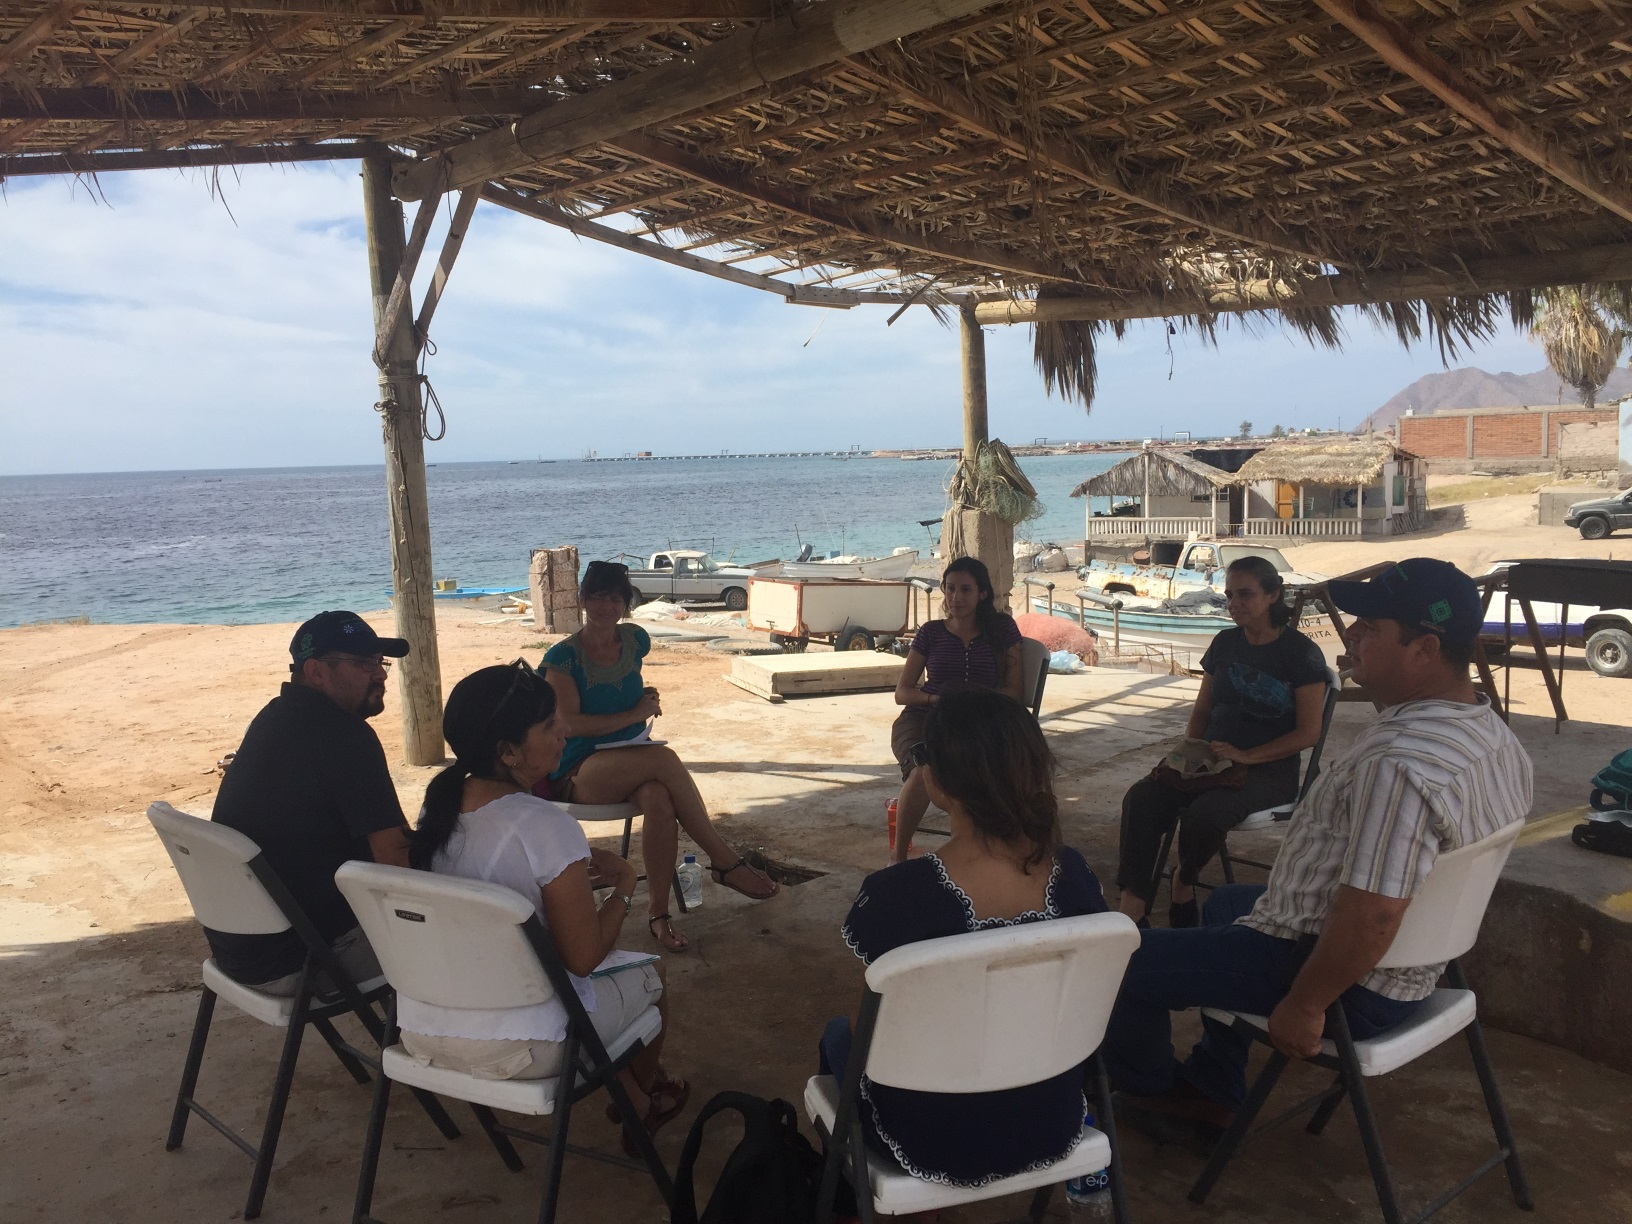 Report from the transdisciplinary workshop in Sonora, Mexico